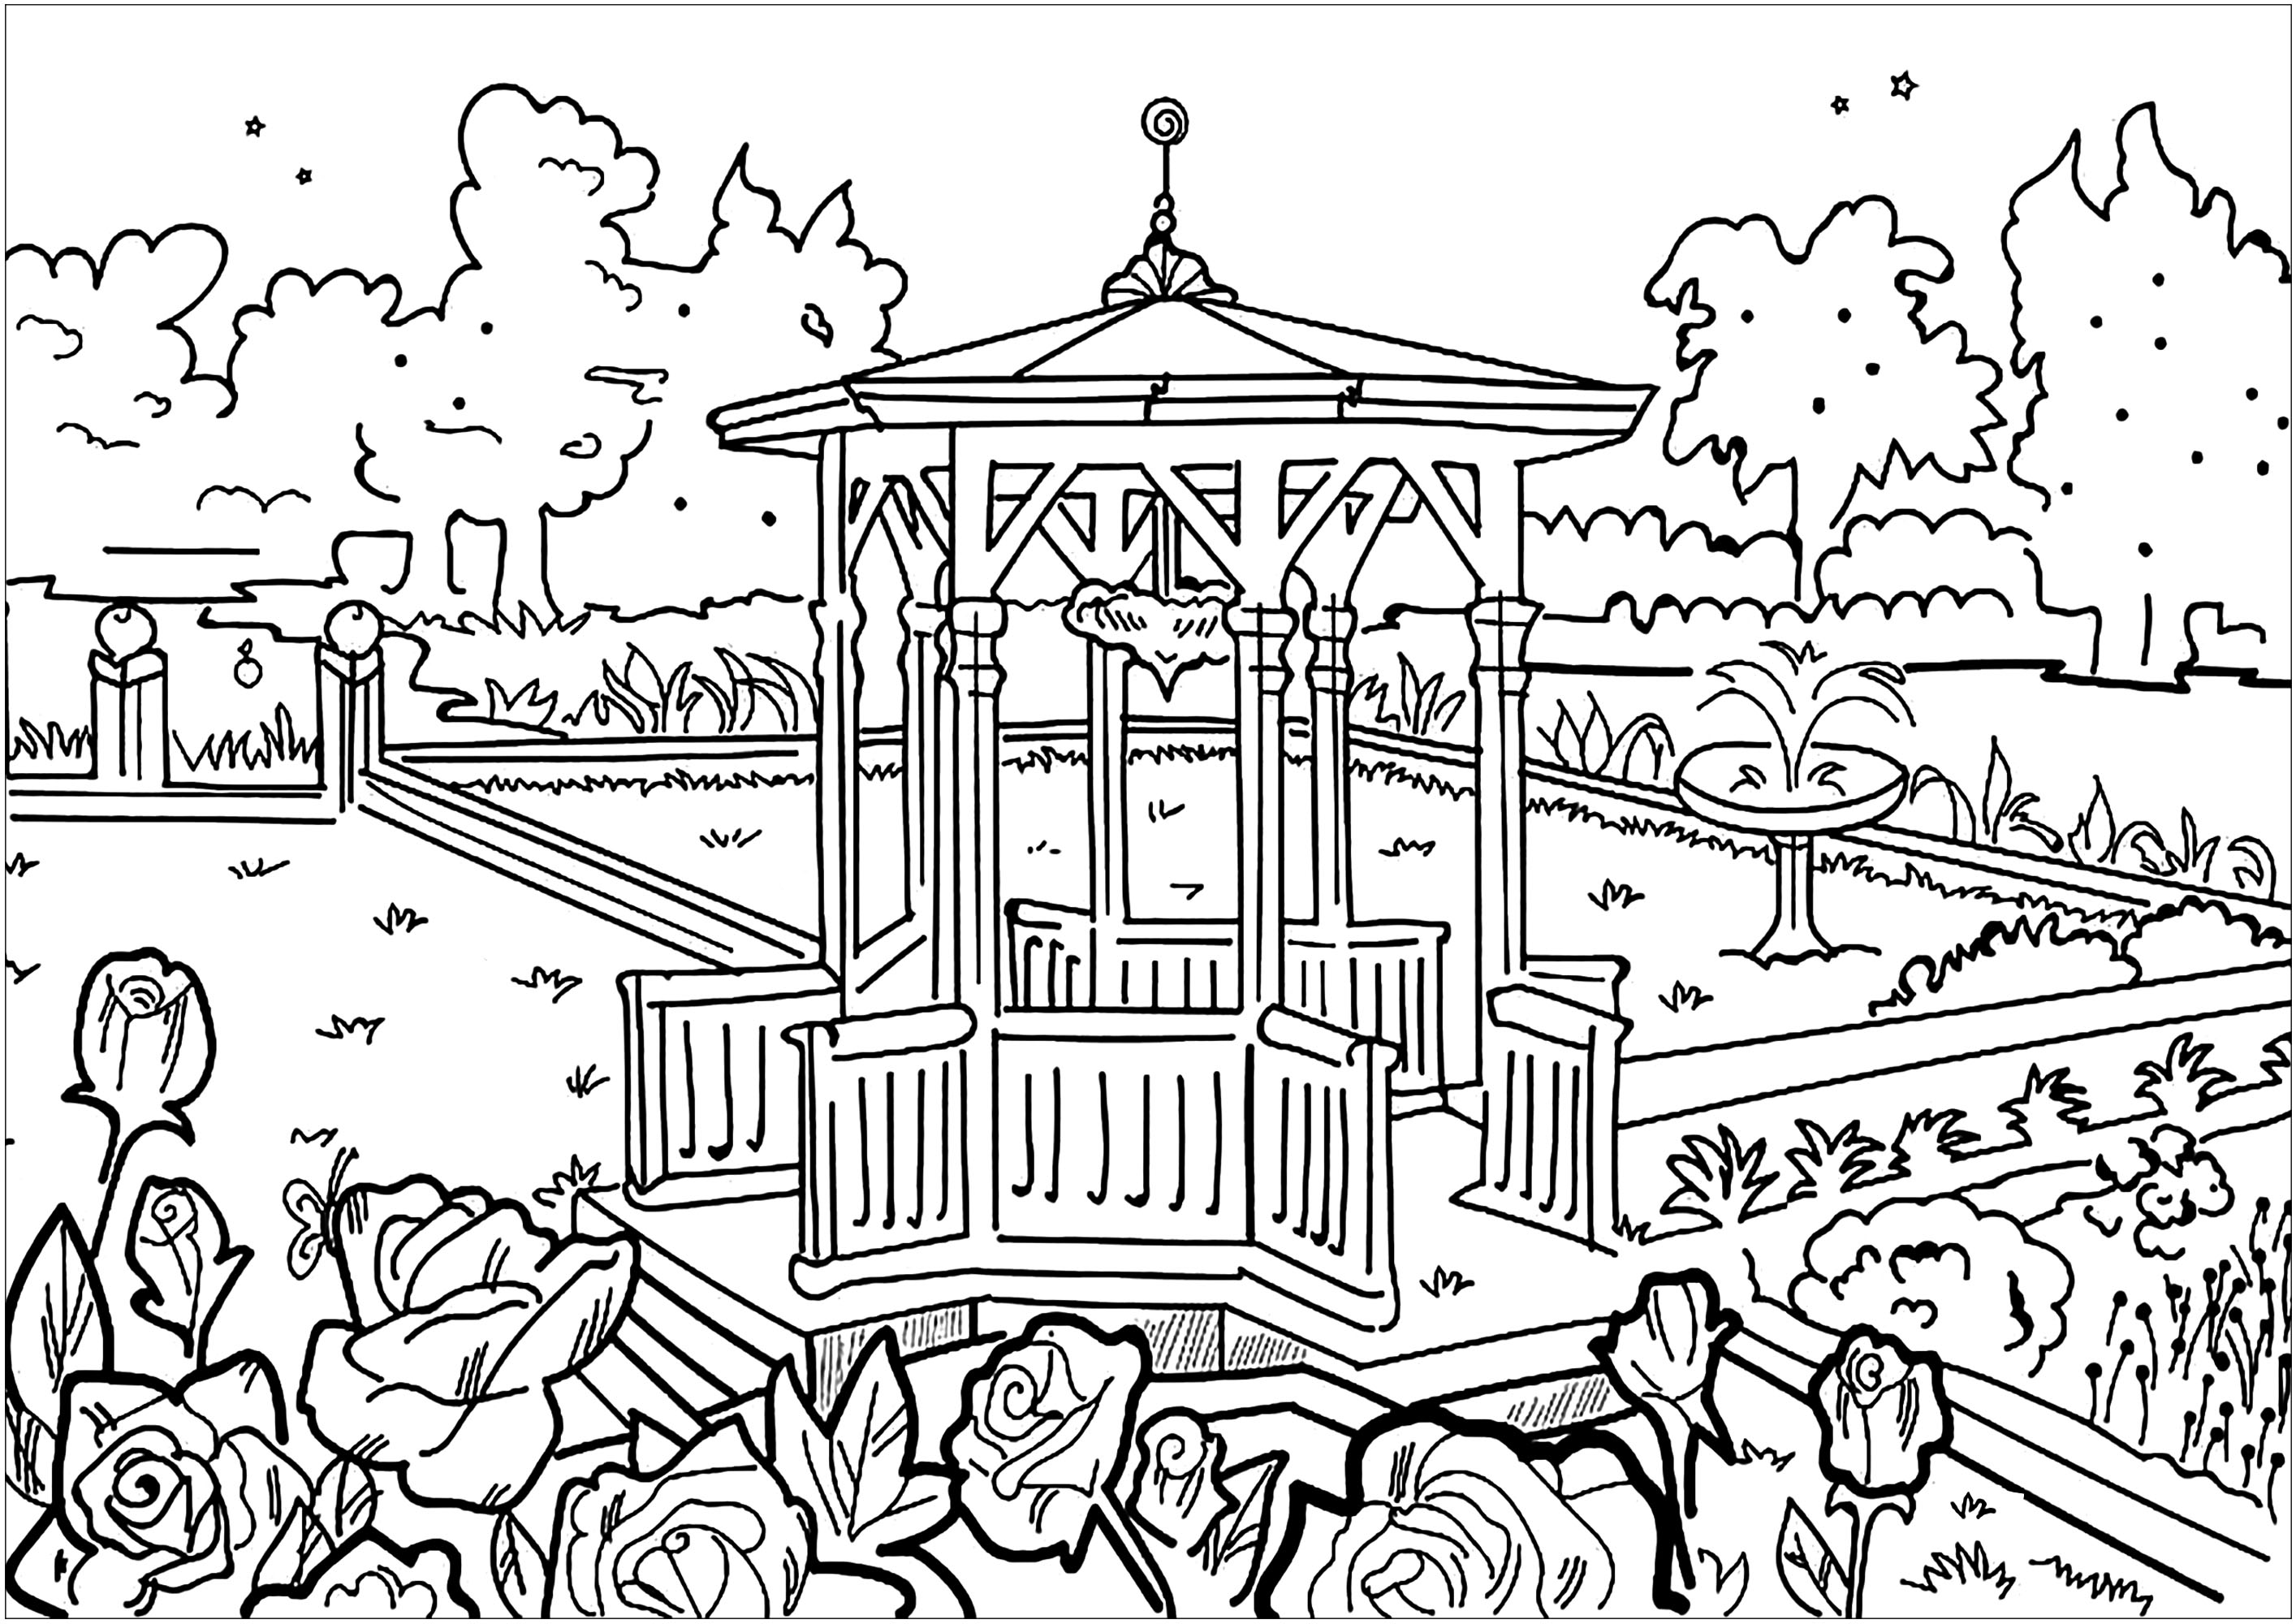 Escape to this pretty public garden and its gazebo from another time